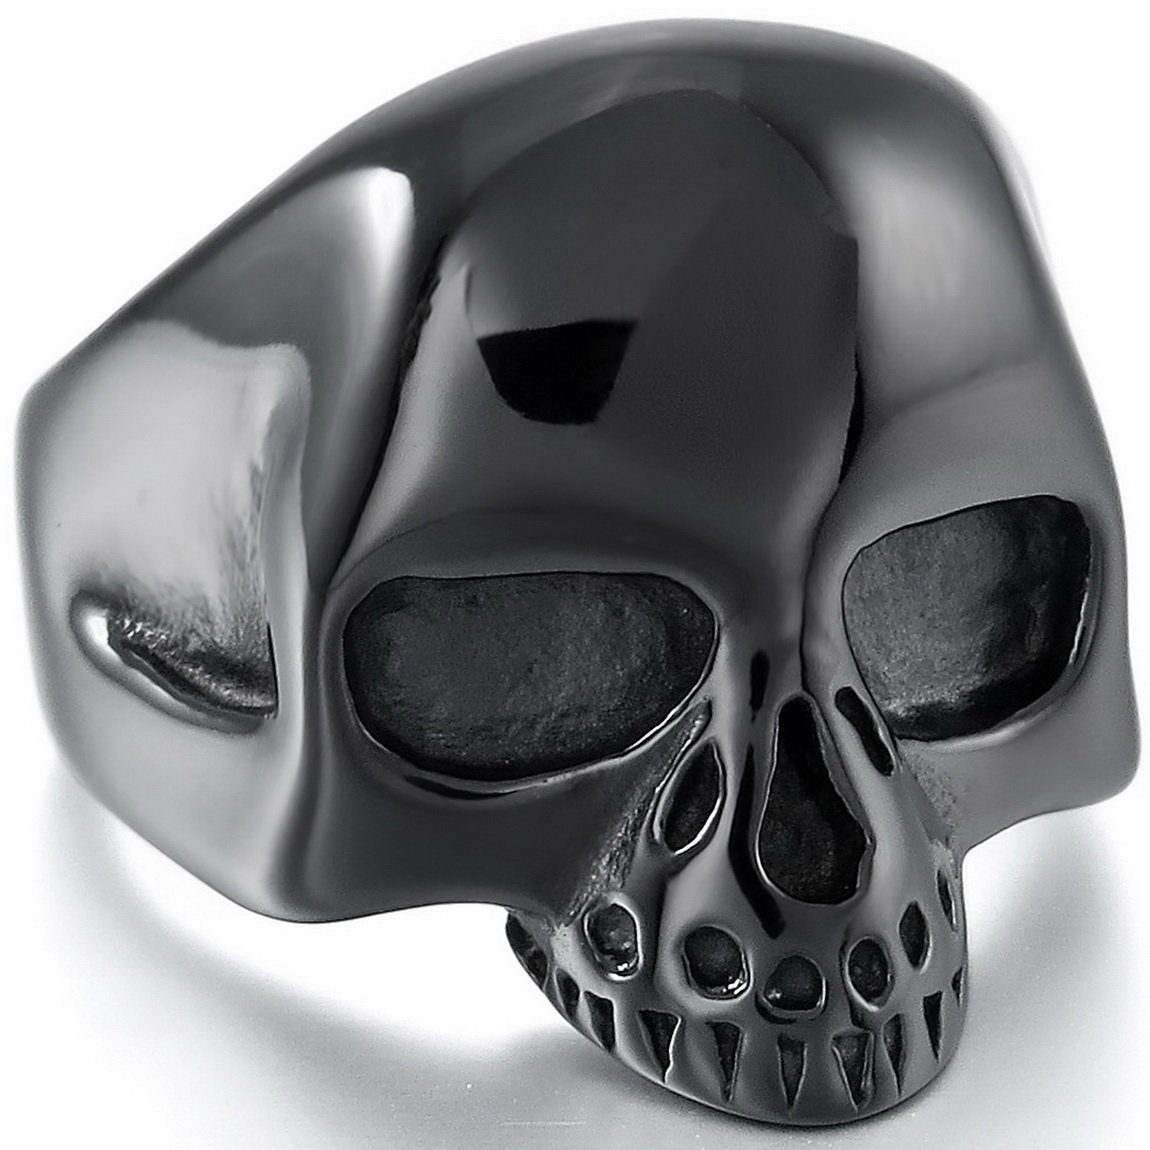 INBLUE Men's Stainless Steel Ring Band Black Alien Skull INBLUE Jewelry mne873-parent